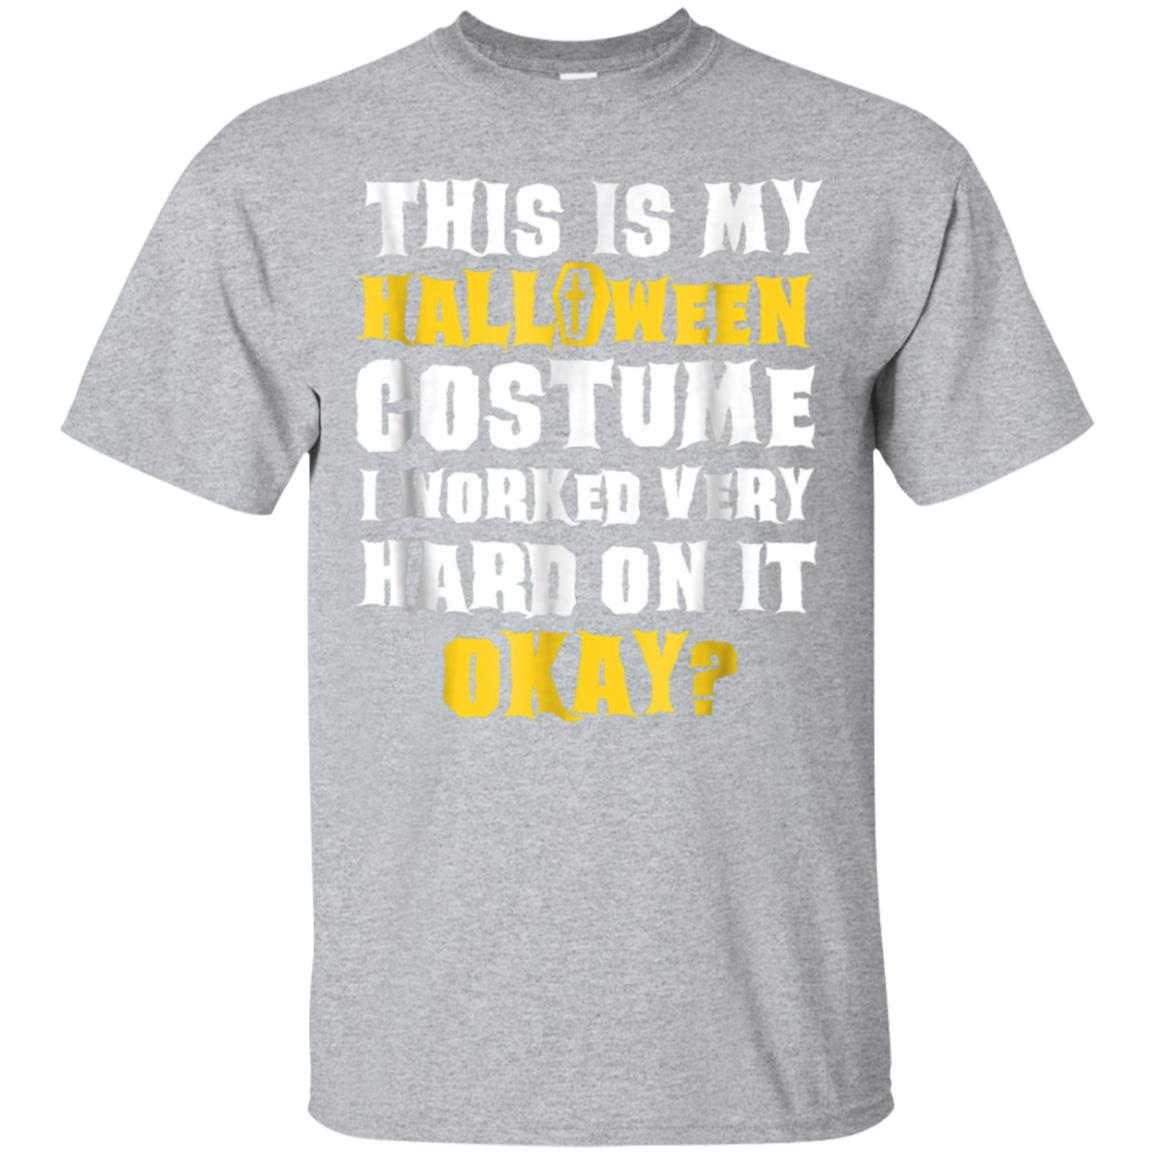 This Is My Halloween Costume Funny Saying Joke T-Shirt 99promocode